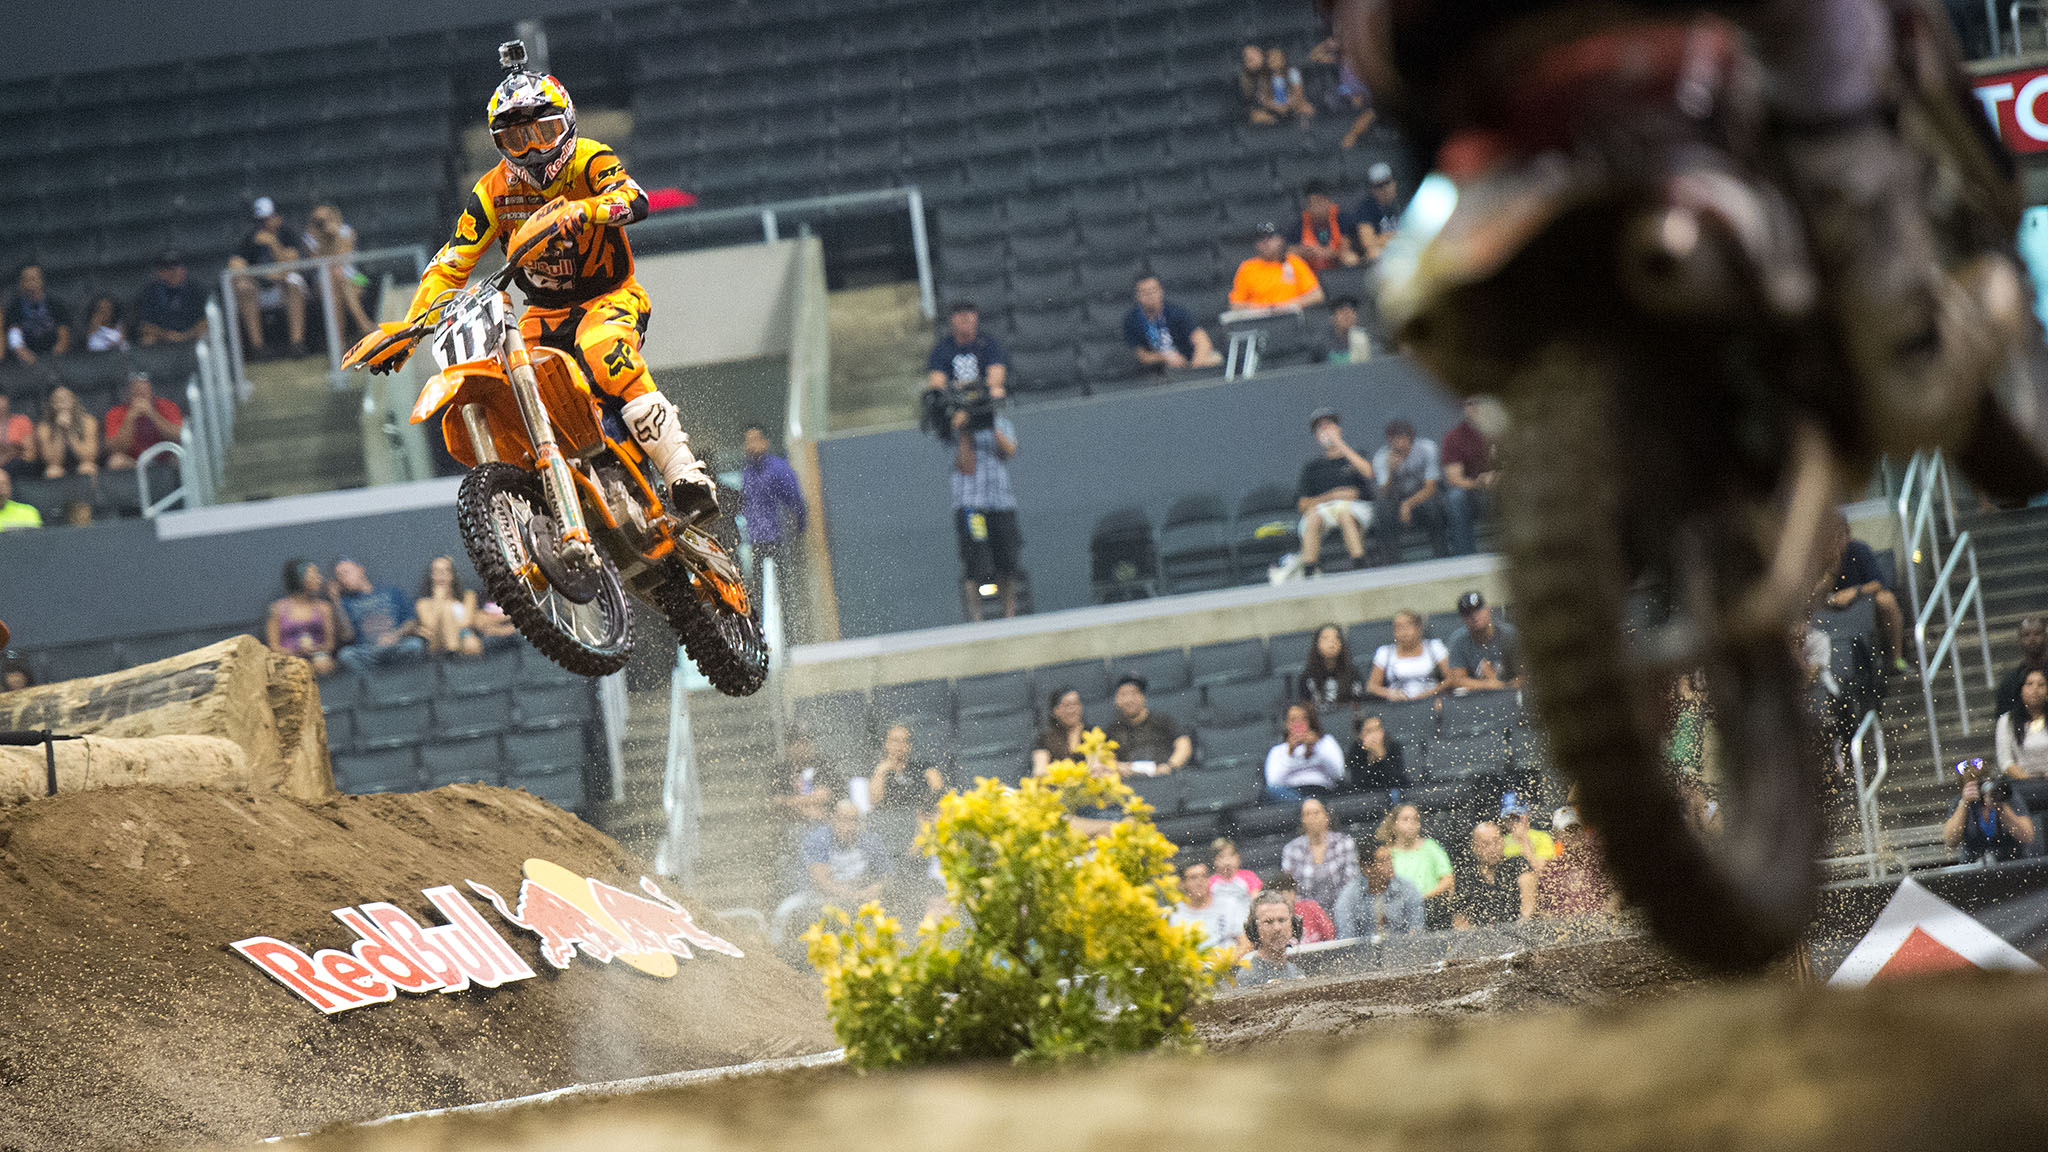 Taddy Blazusiak took gold again in Men's Enduro X on the last day of X Games Los Angeles.